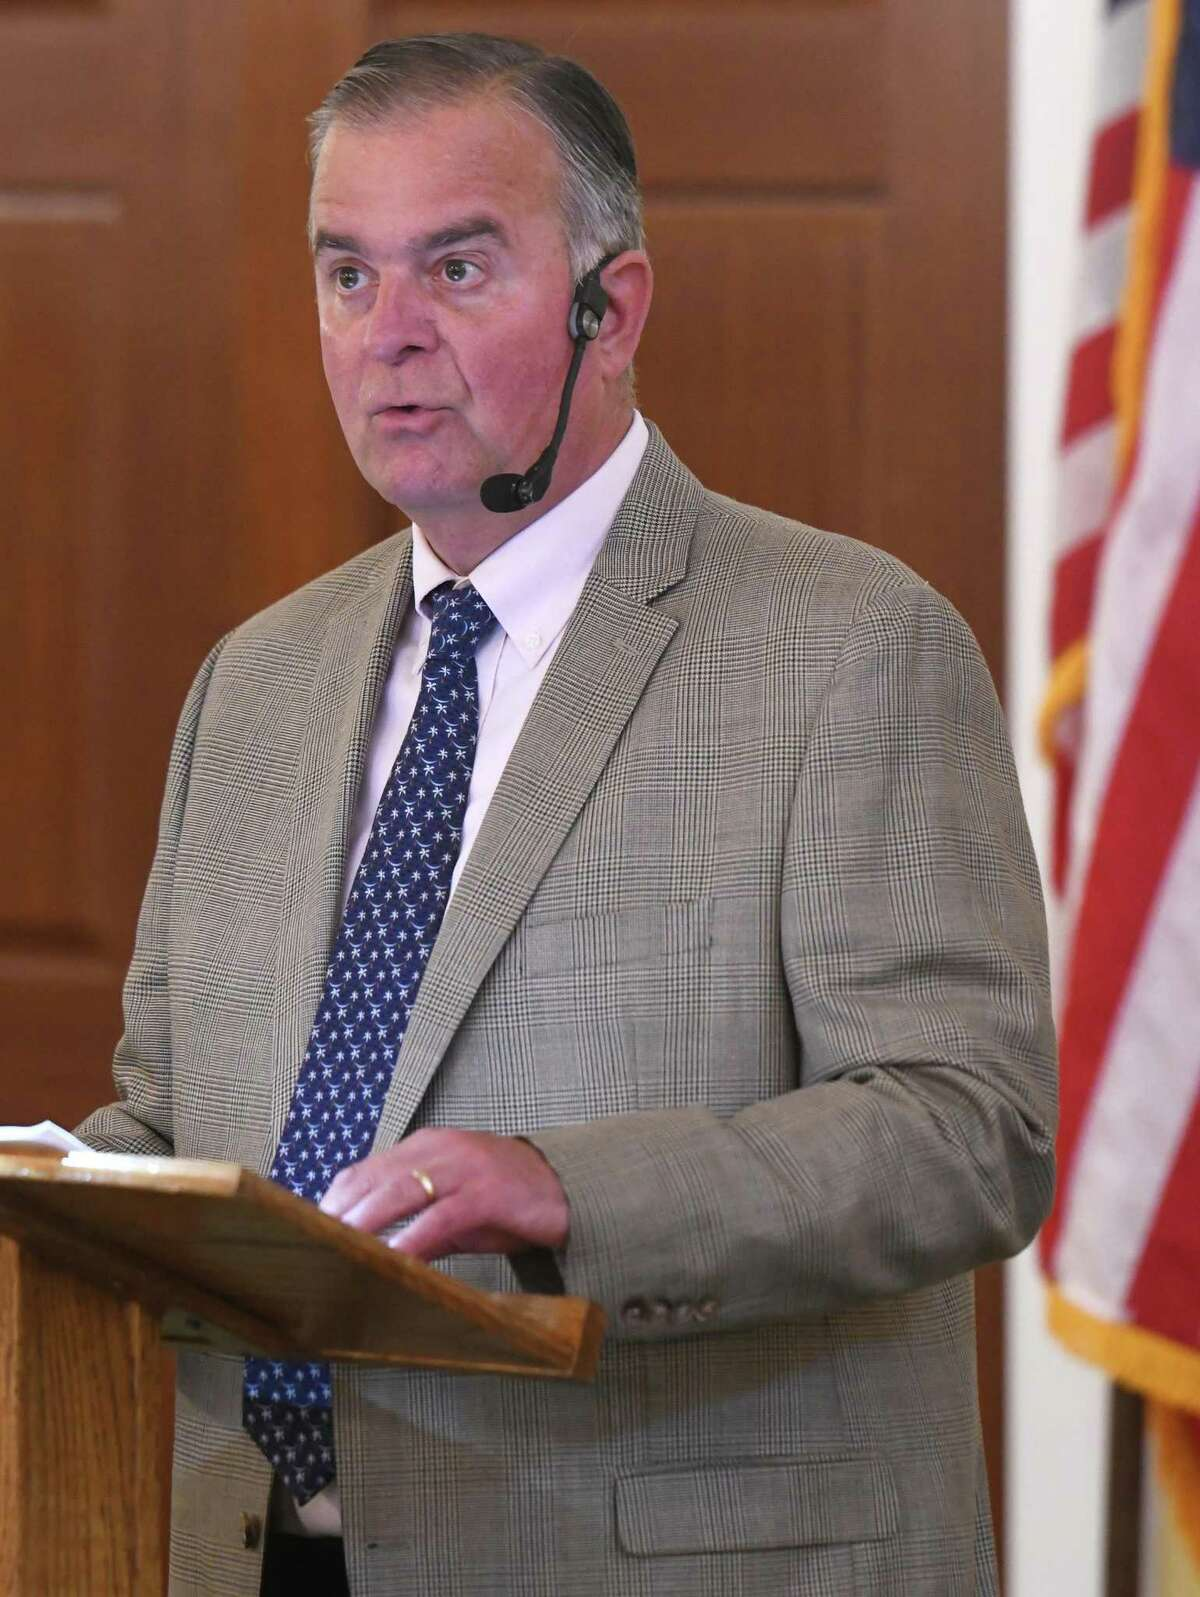 State Rep. Steve Meskers, D-Greenwich, has also been a strong advocate of expanded voting opportunities.